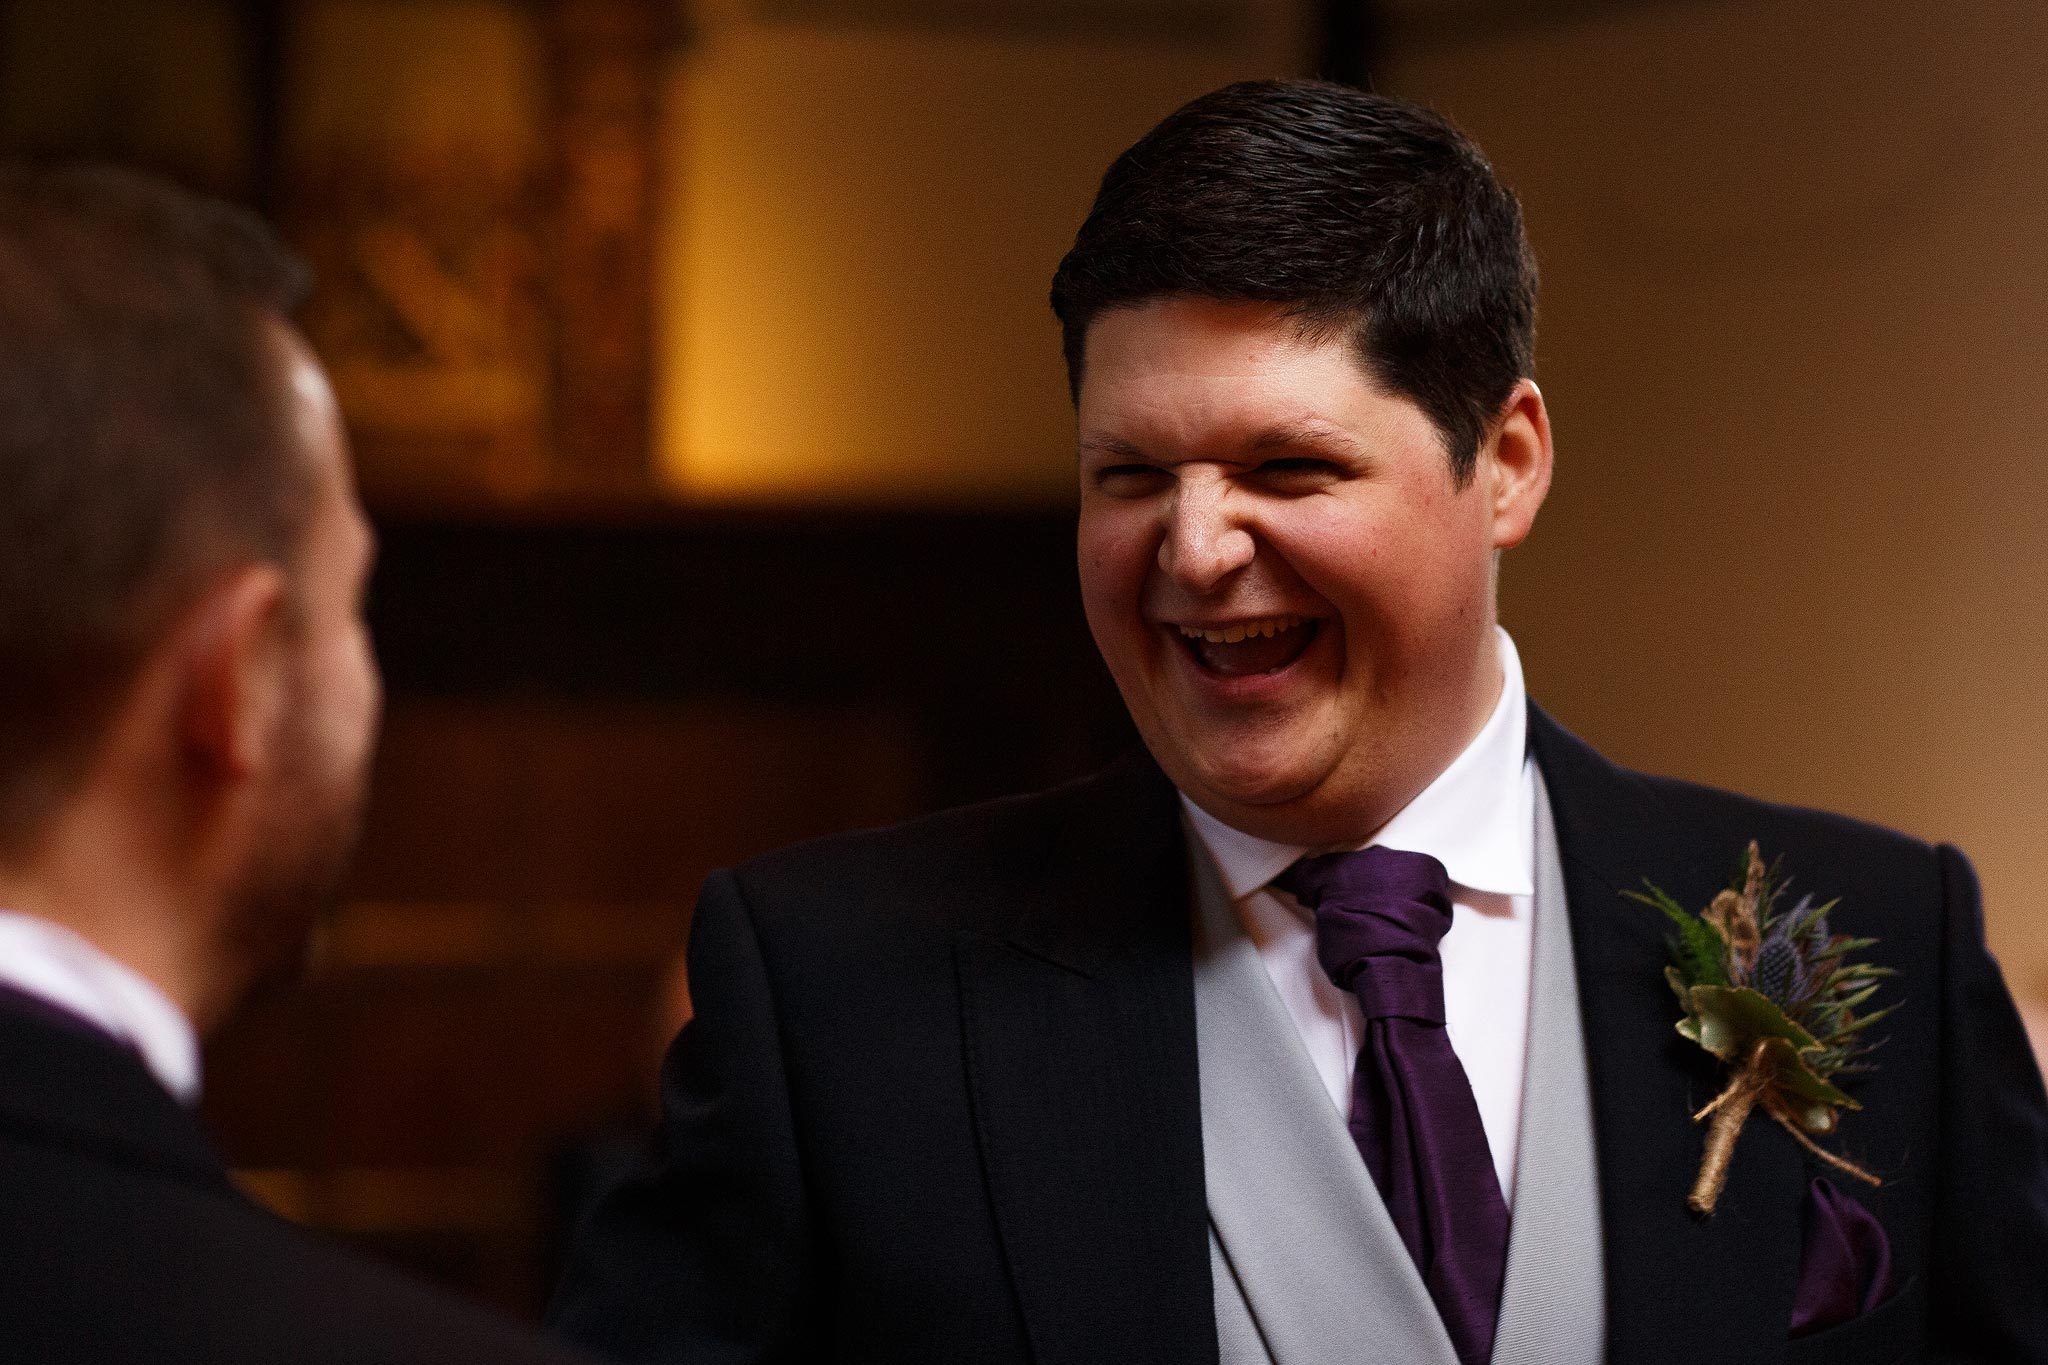 Groom laughing at the top of the aisle at Samlesbury Hall Wedding